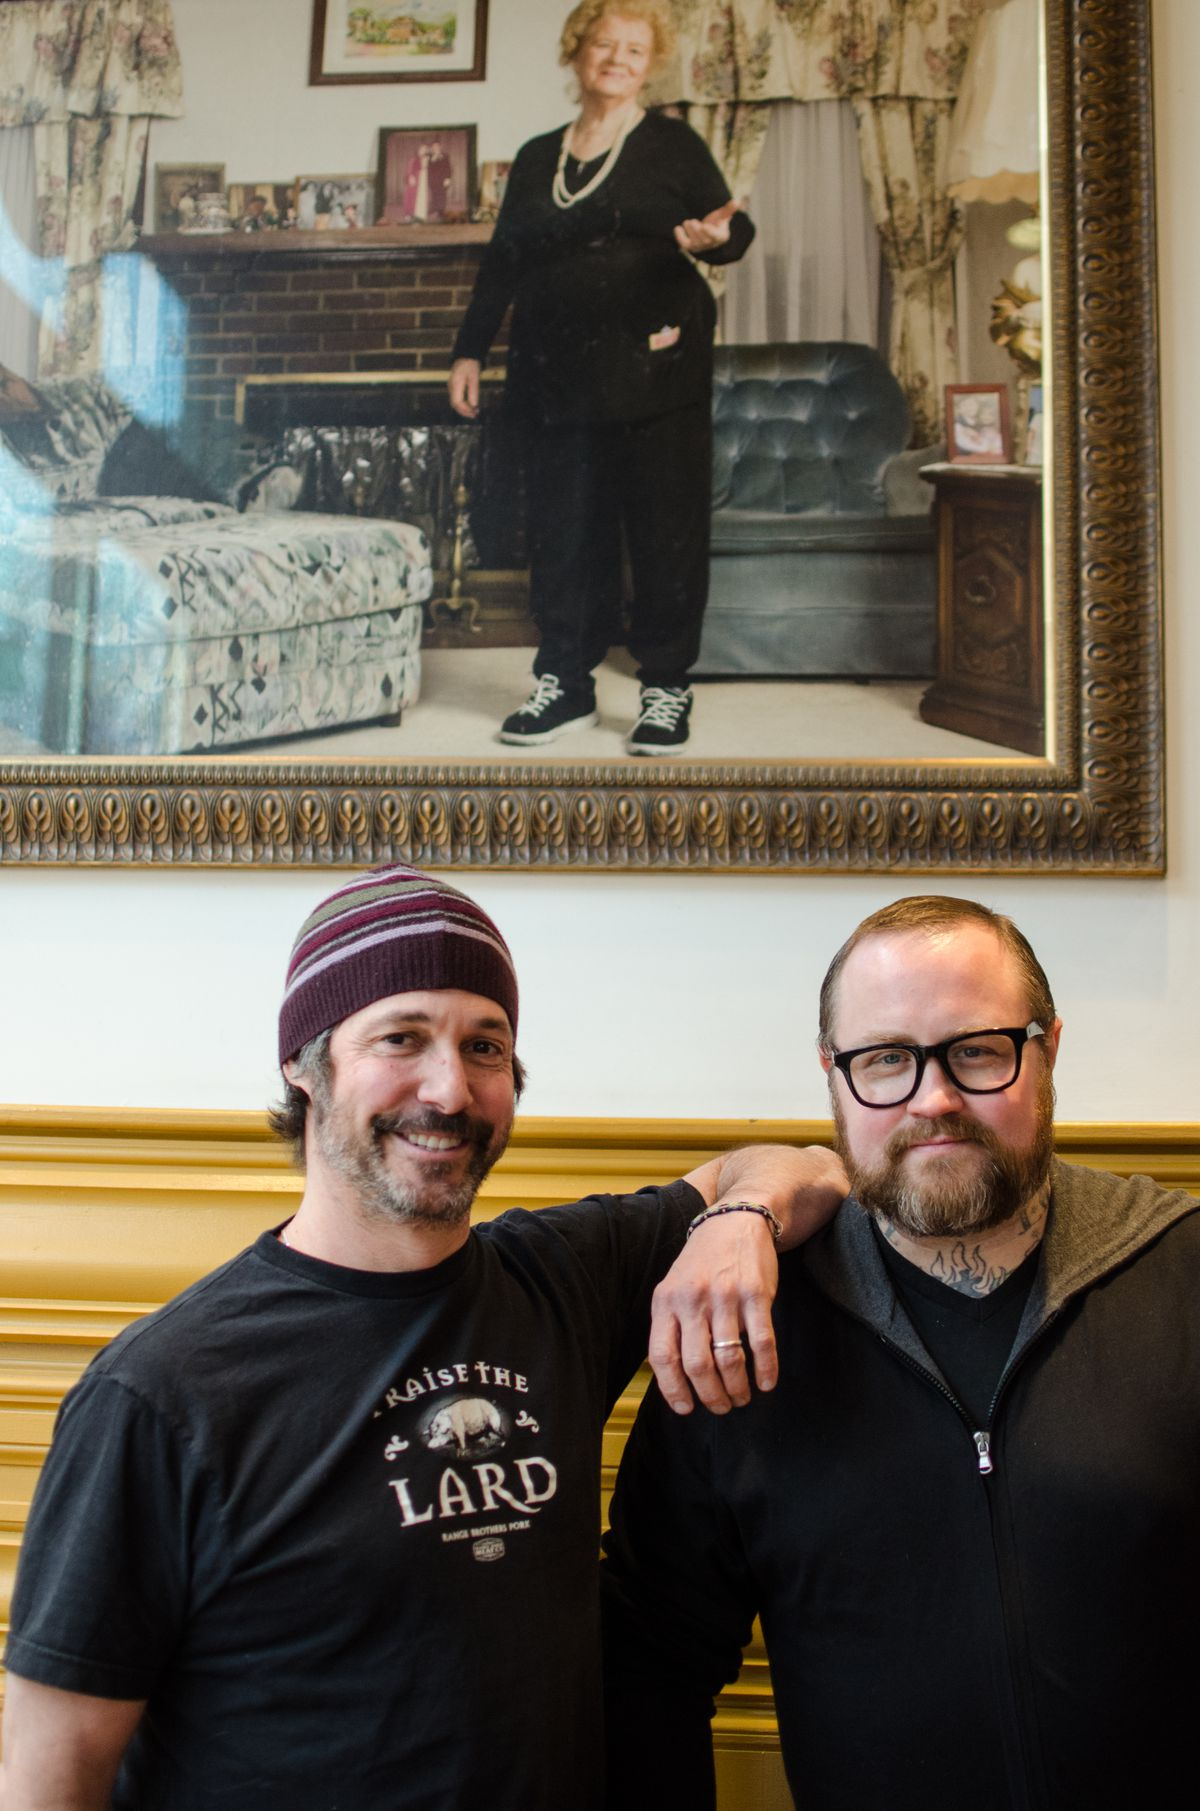 """Two men stand under a painted portrait of an Italian grandma. One man is wearing a black t-shirt that says """"Praise the Lard"""" and the other is wearing black, thick-rimmed glasses."""